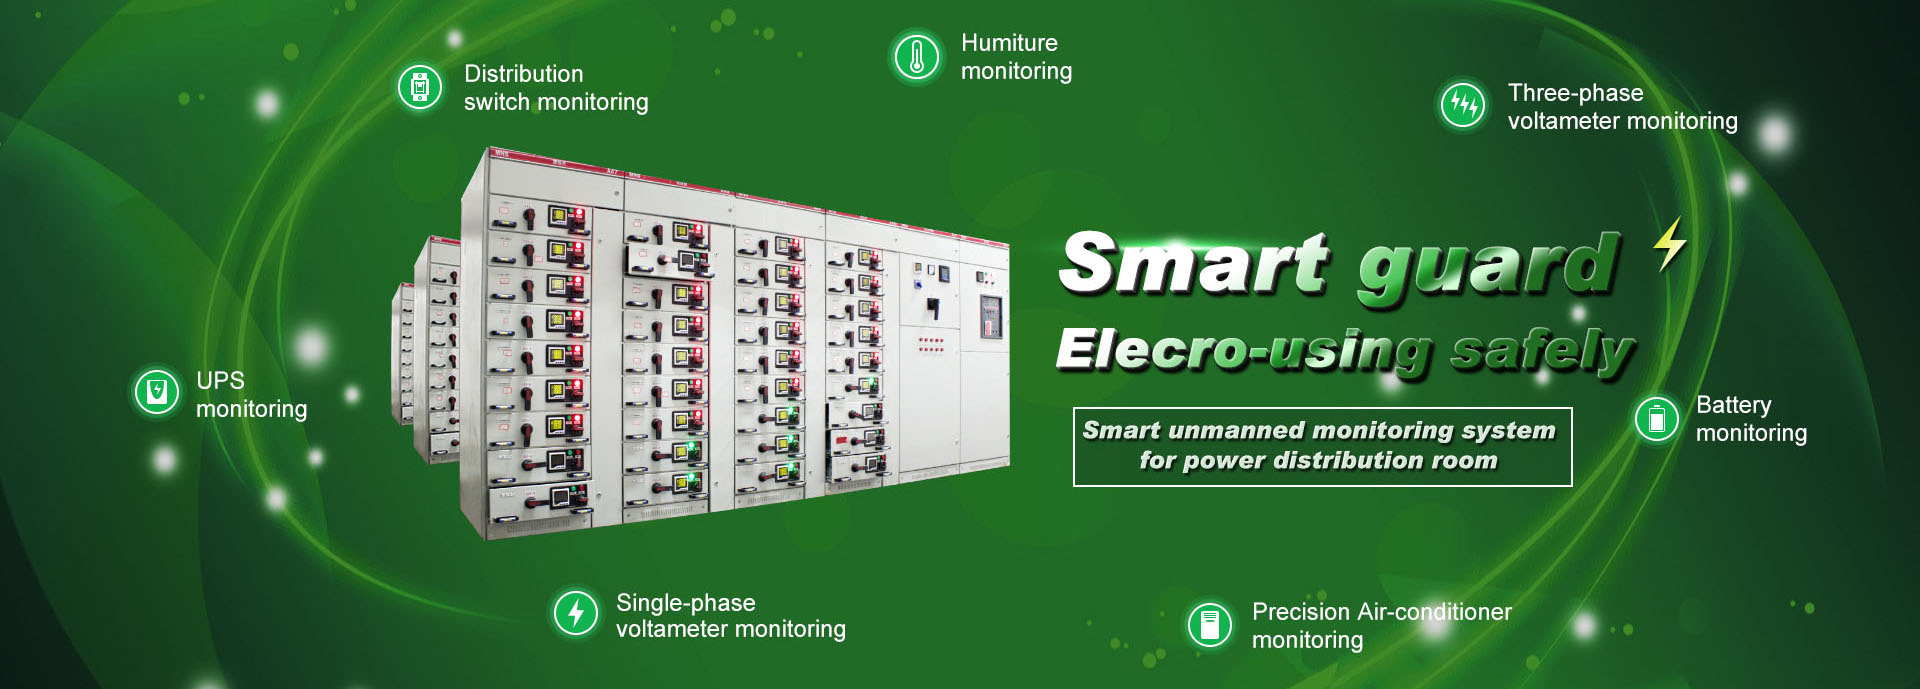 Power distribution station envrmt monitoring system